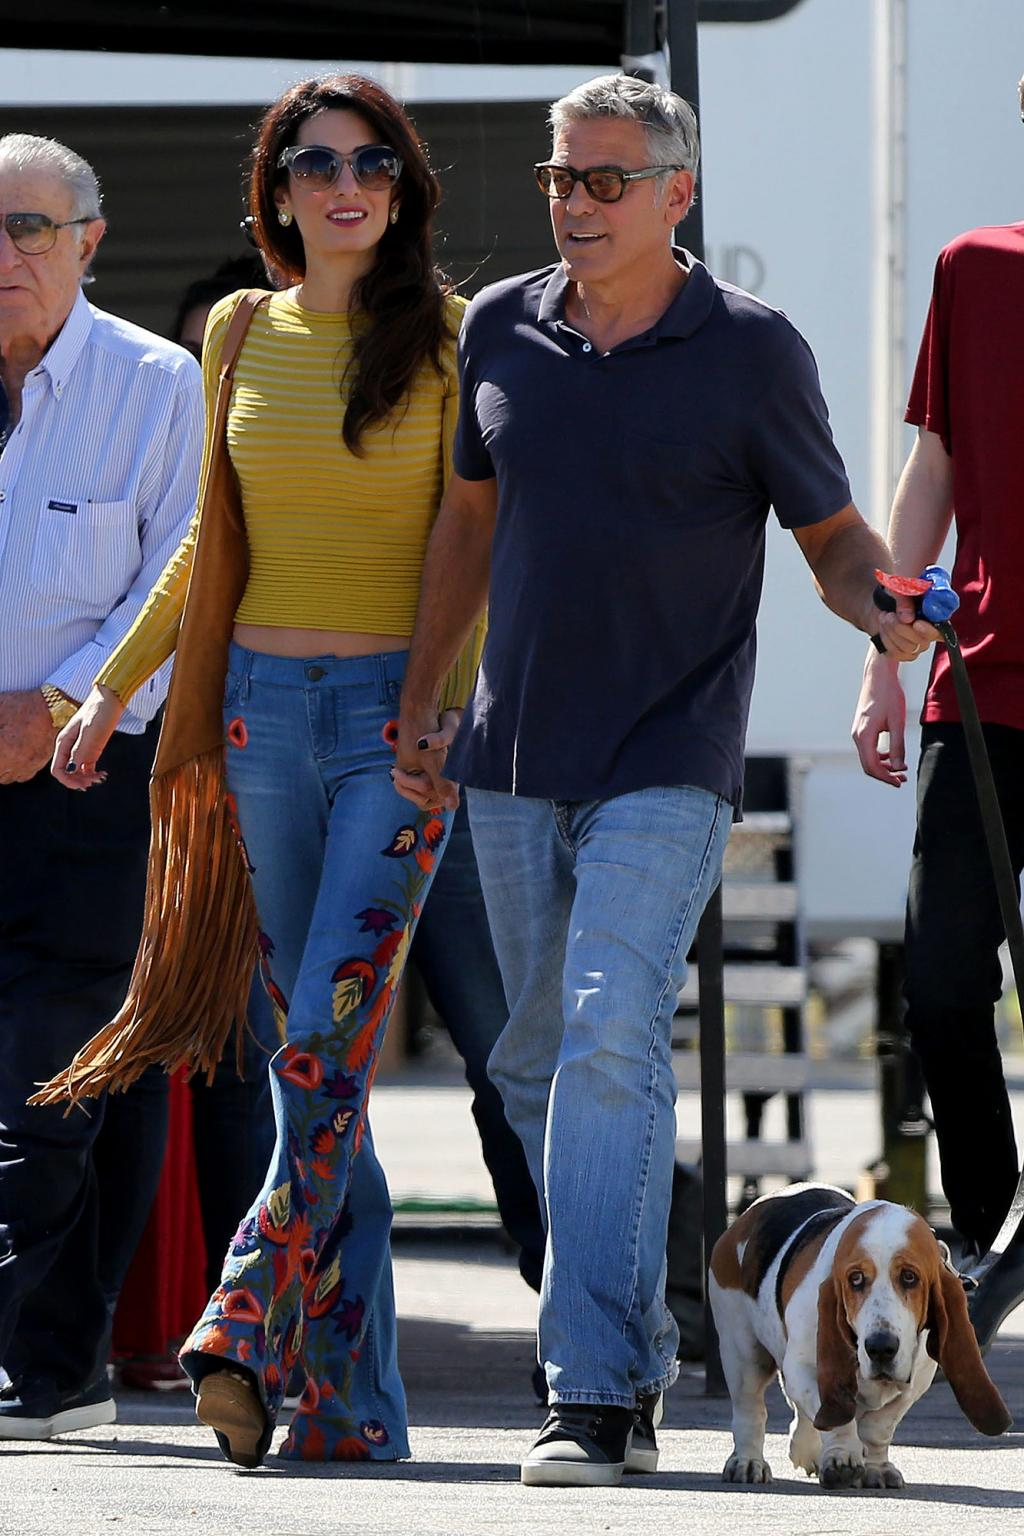 Amal Clooney Is         70s Fall Chic in Alice + Olivia Embroidered Jeans on Set of Husband George       's Movie Set